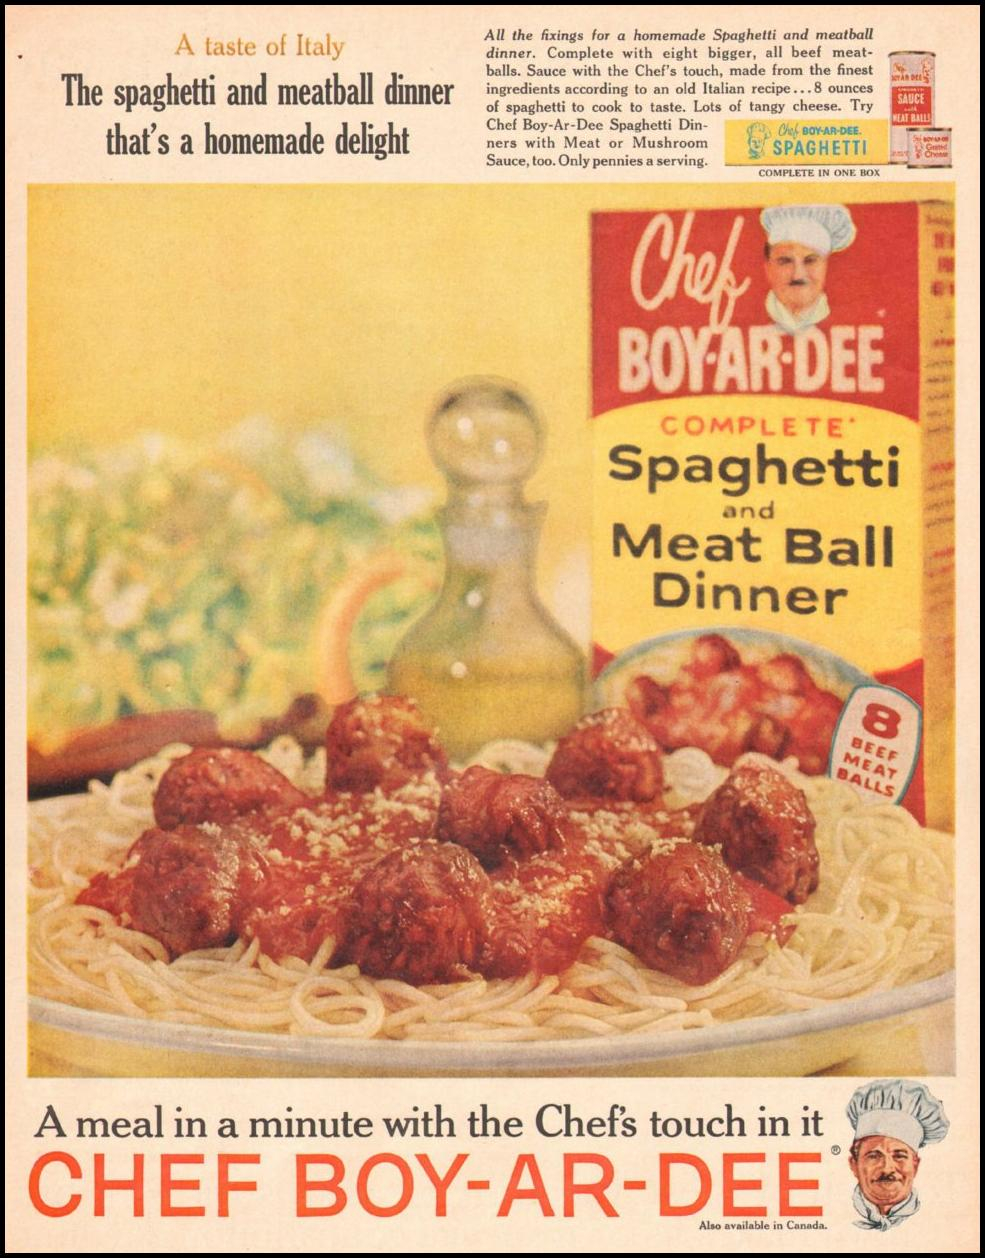 CHEF BOY-AR-DEE SPAGHETTI DINNER LIFE 05/05/1961